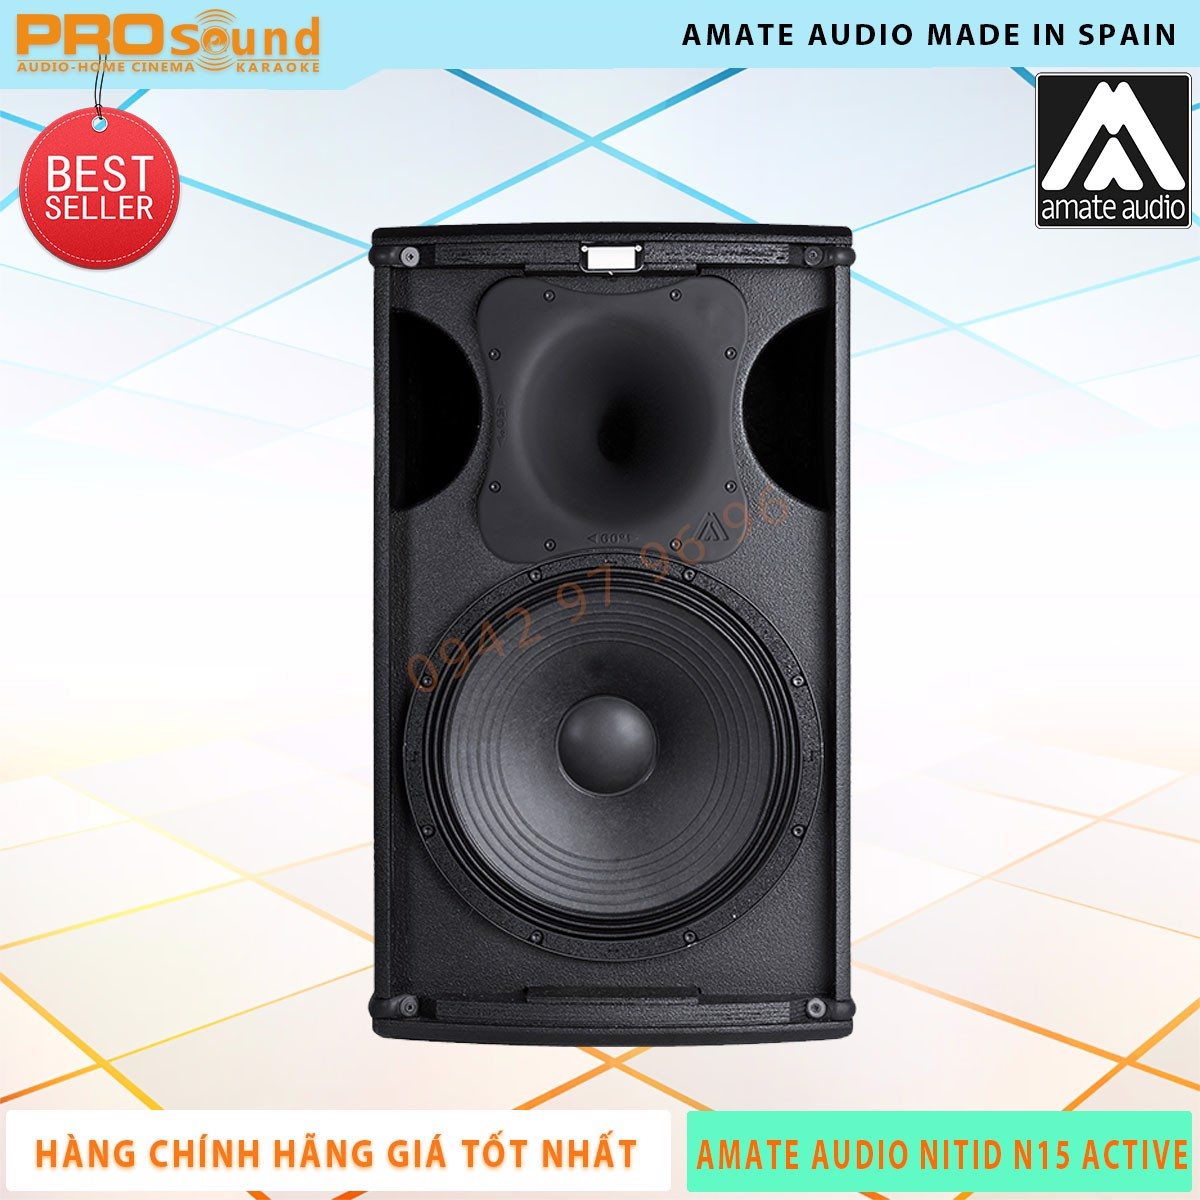 AMATE AUDIO